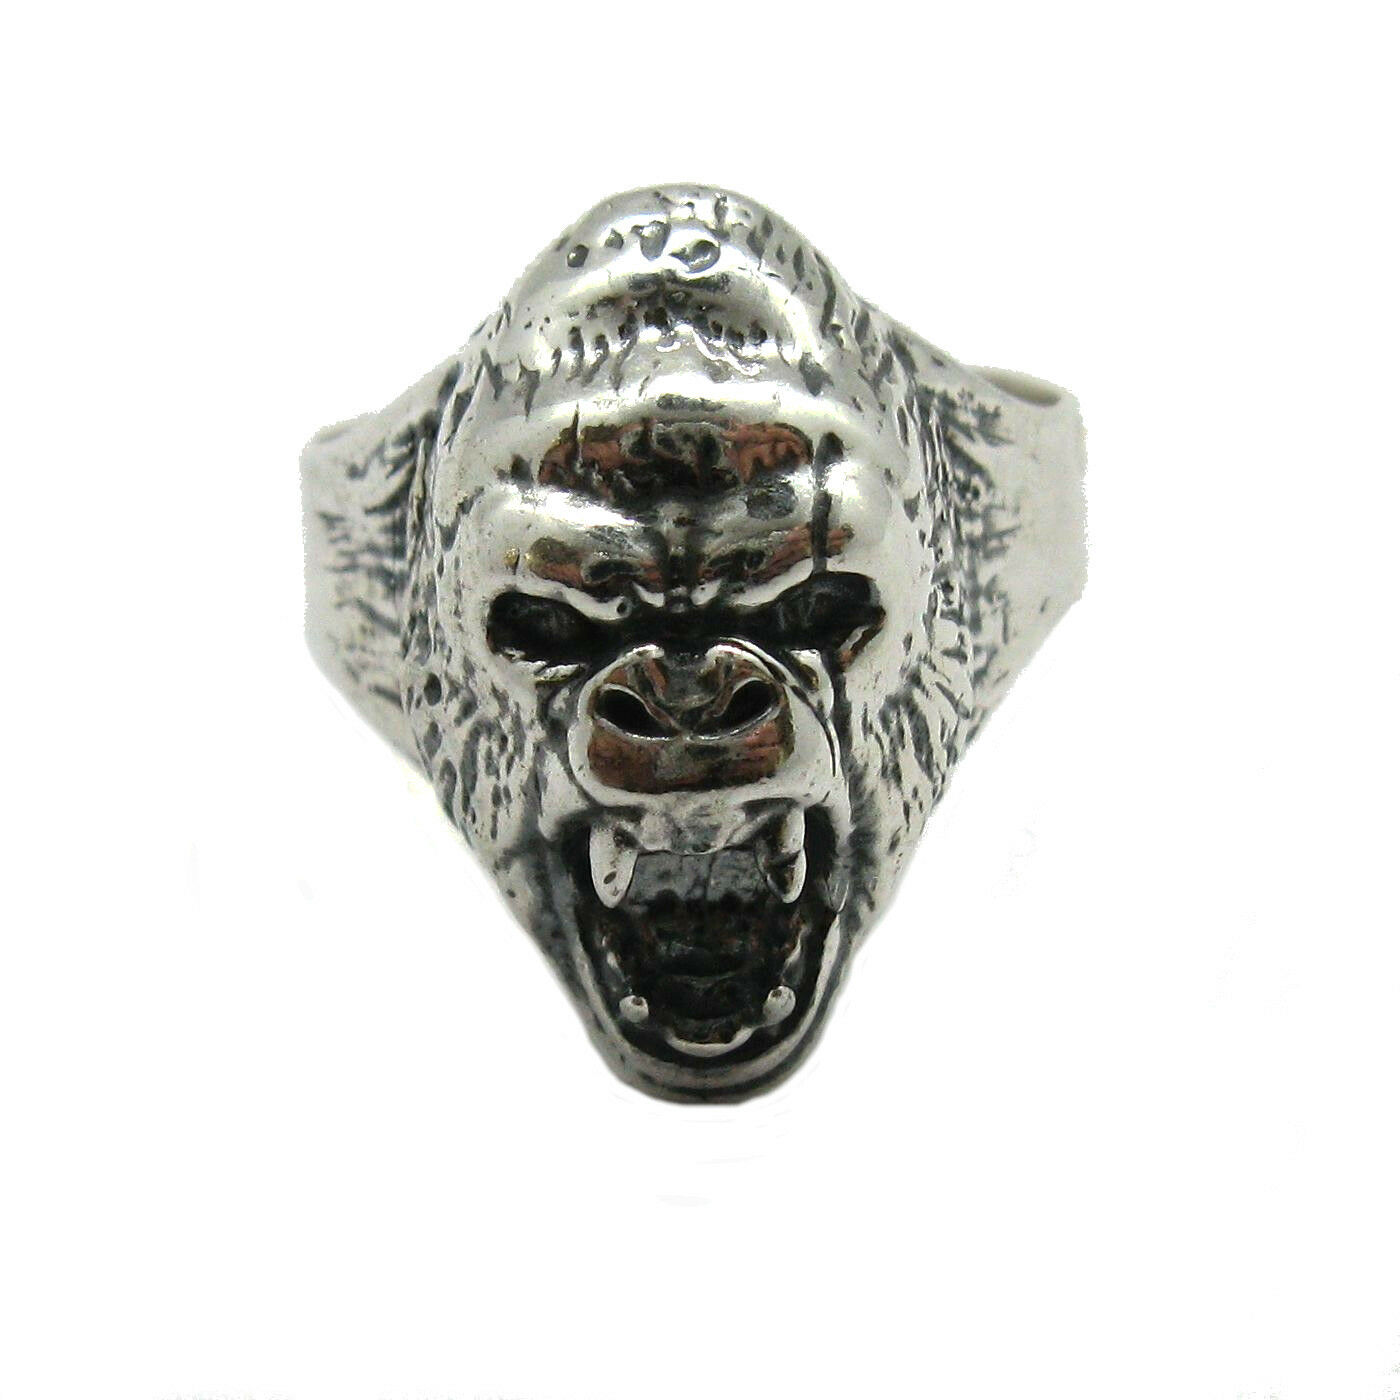 b2369ee9f331 Sterling silver herren 925 Gorilla R001838 EMPRESS ring nwzuja5013-Precious  Metal without Stones